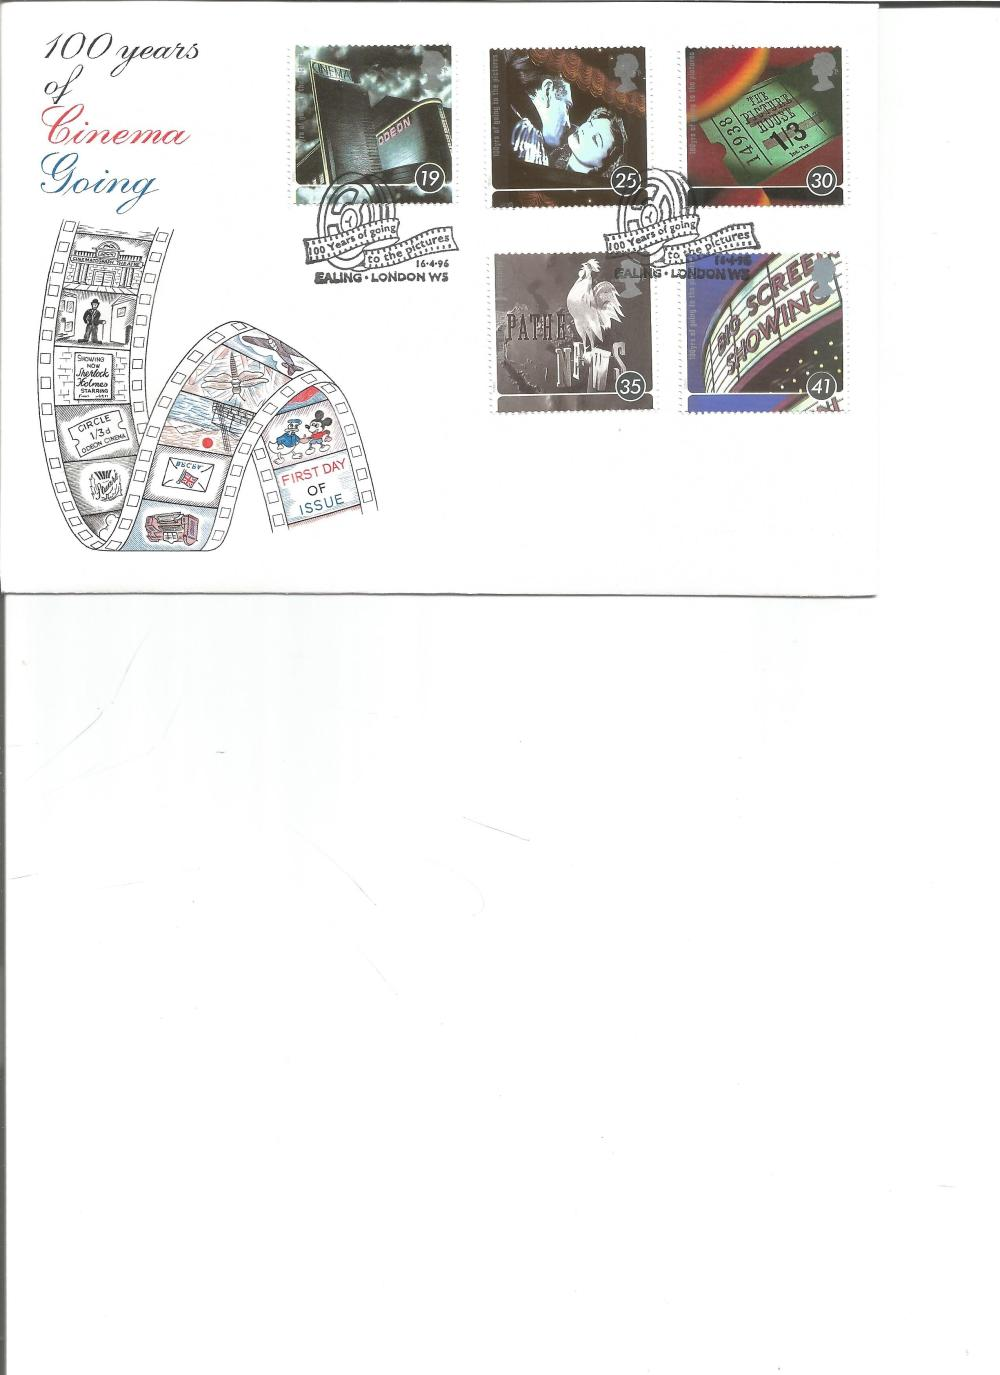 FDC 100 YEARS of Cinema Going c/w set of five commemorative stamps double PM 100 Years of going to